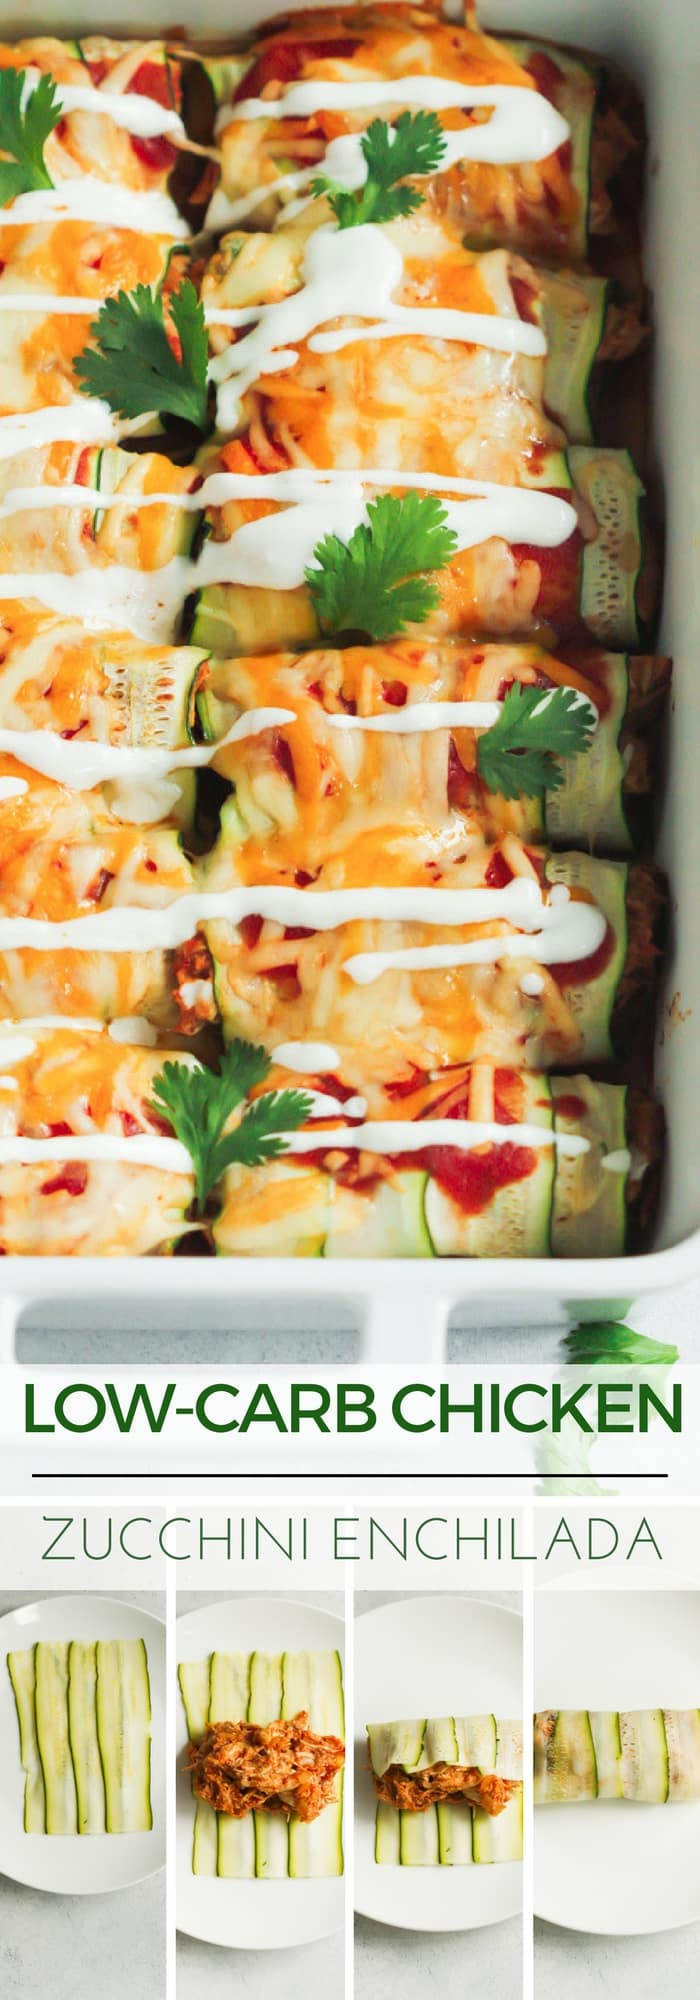 "Low-carb Chicken Zucchini Enchilada - This Low-carb Chicken Zucchini Enchilada is made with ""zucchini tortillas"" and it's loaded with enchilada sauce, chicken and cheese. It's also gluten-free and very flavorful!"